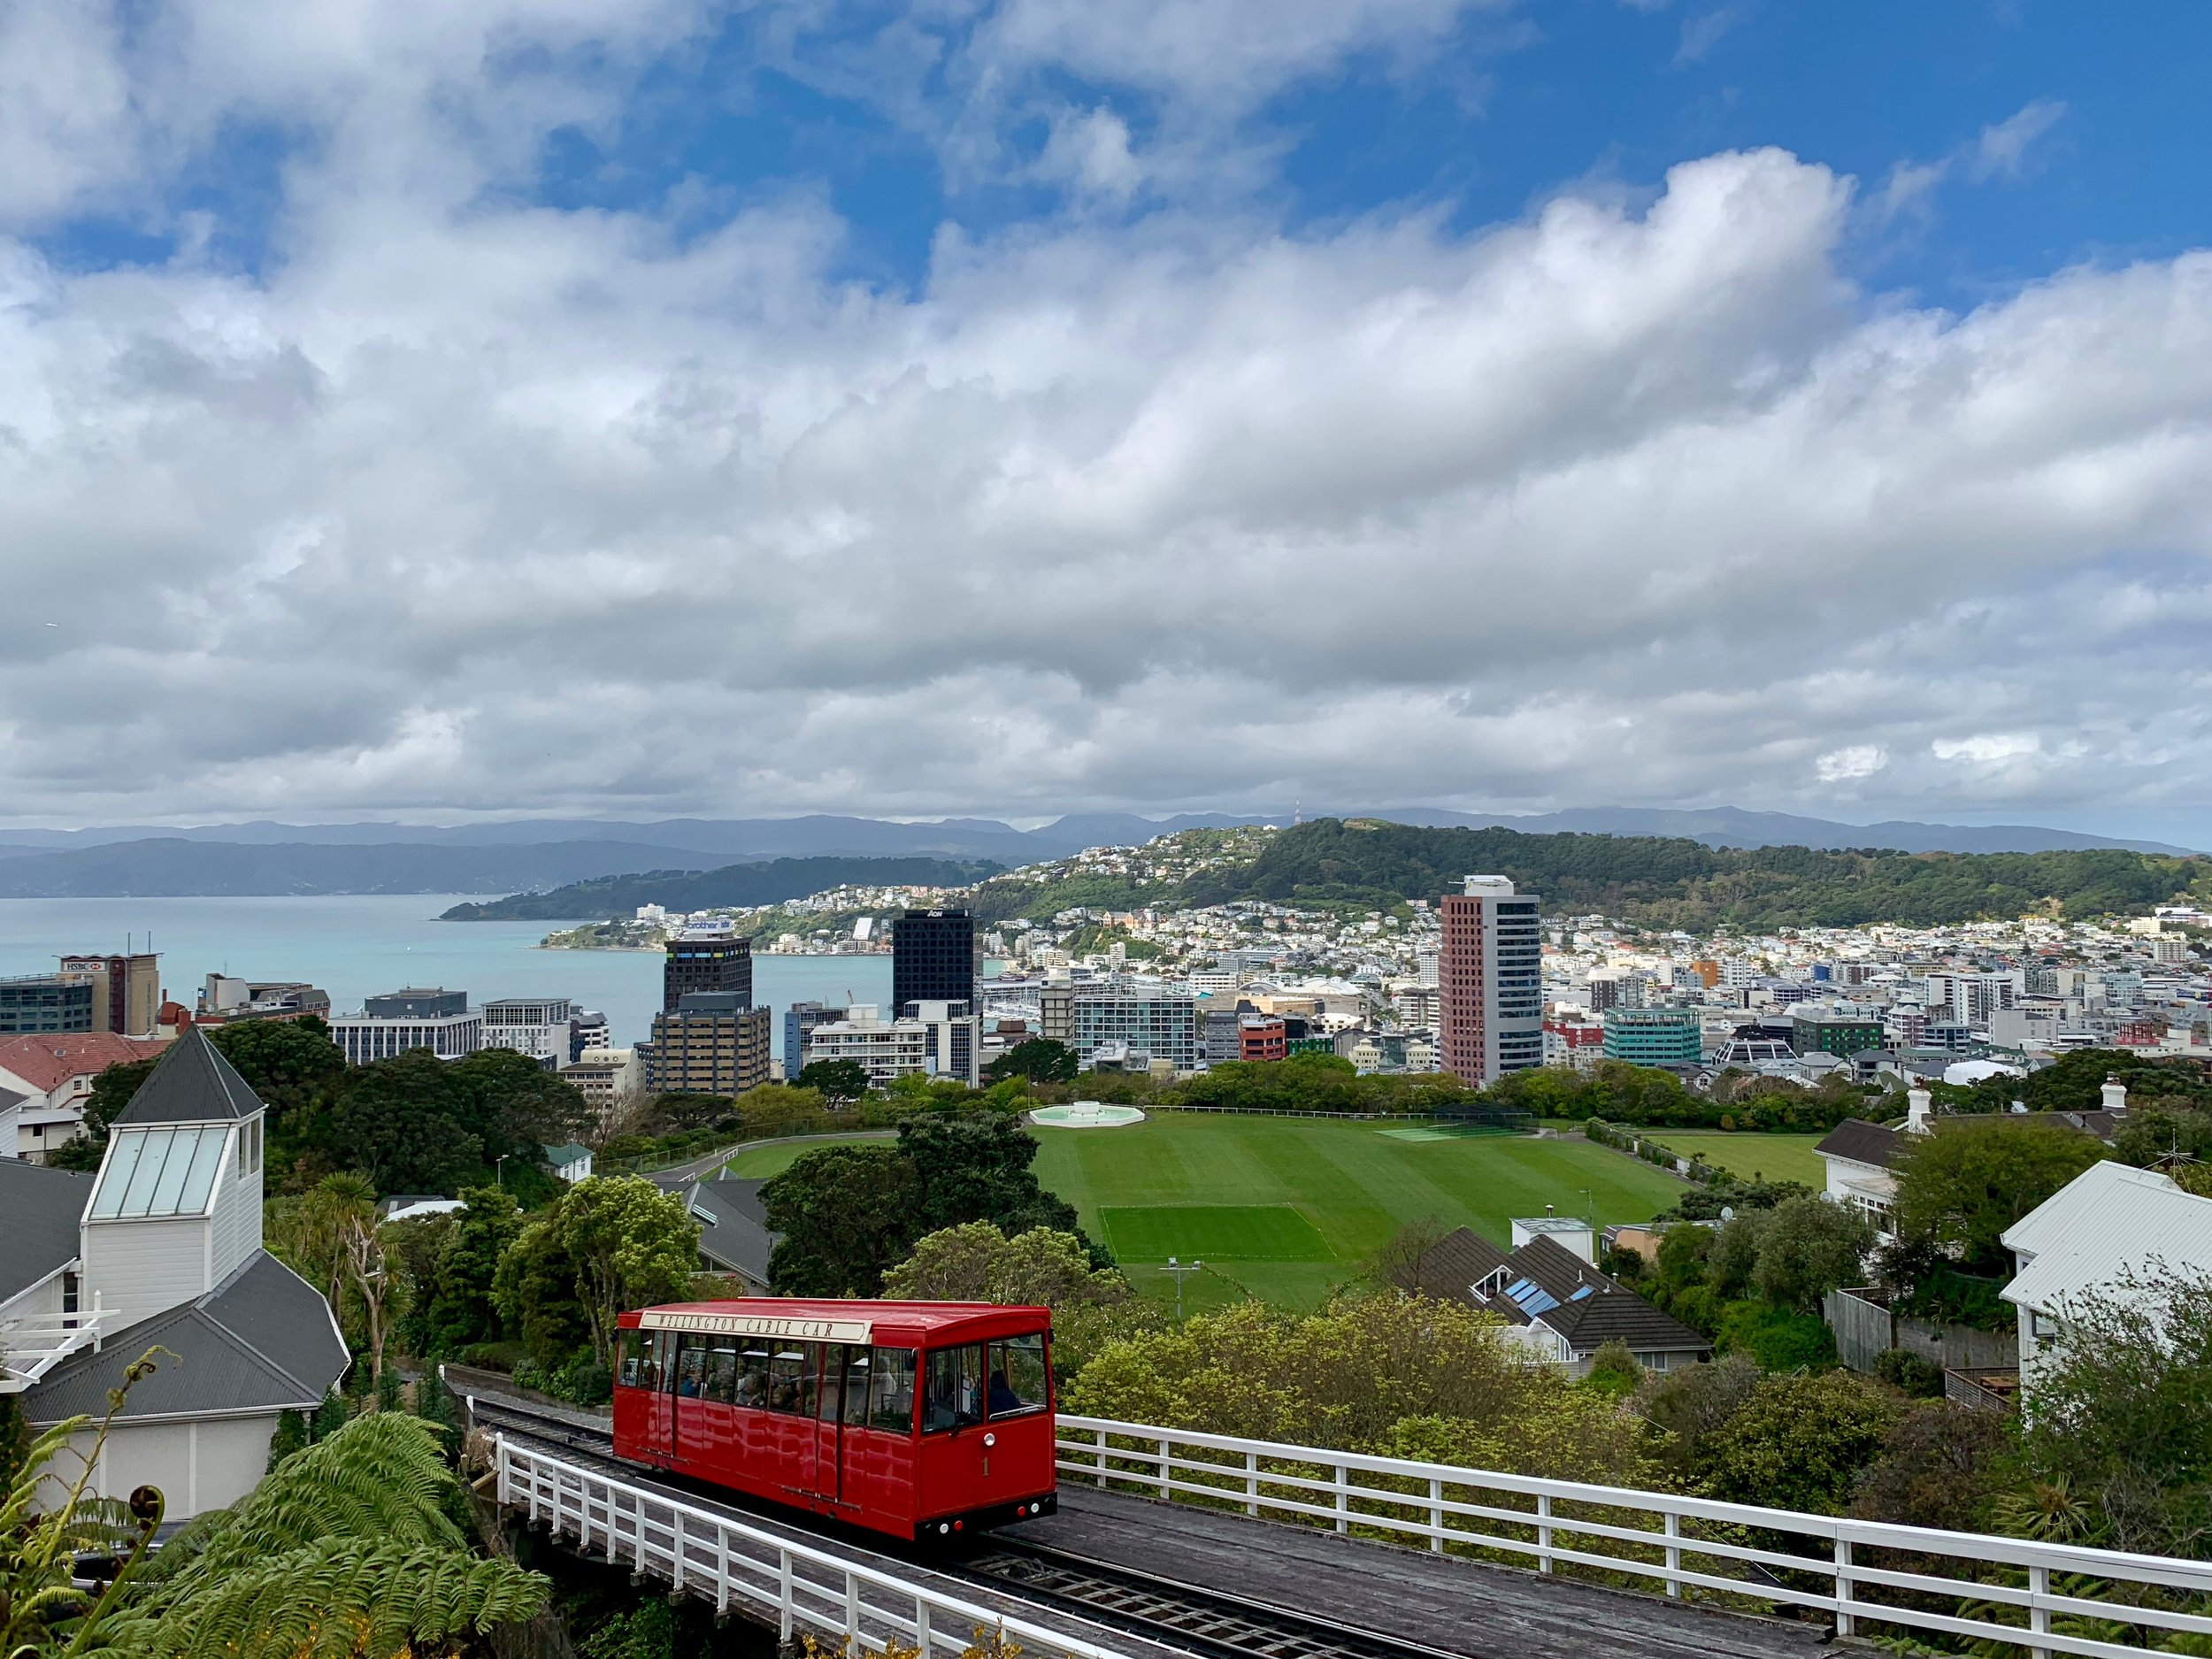 The contained beauty of Wellington